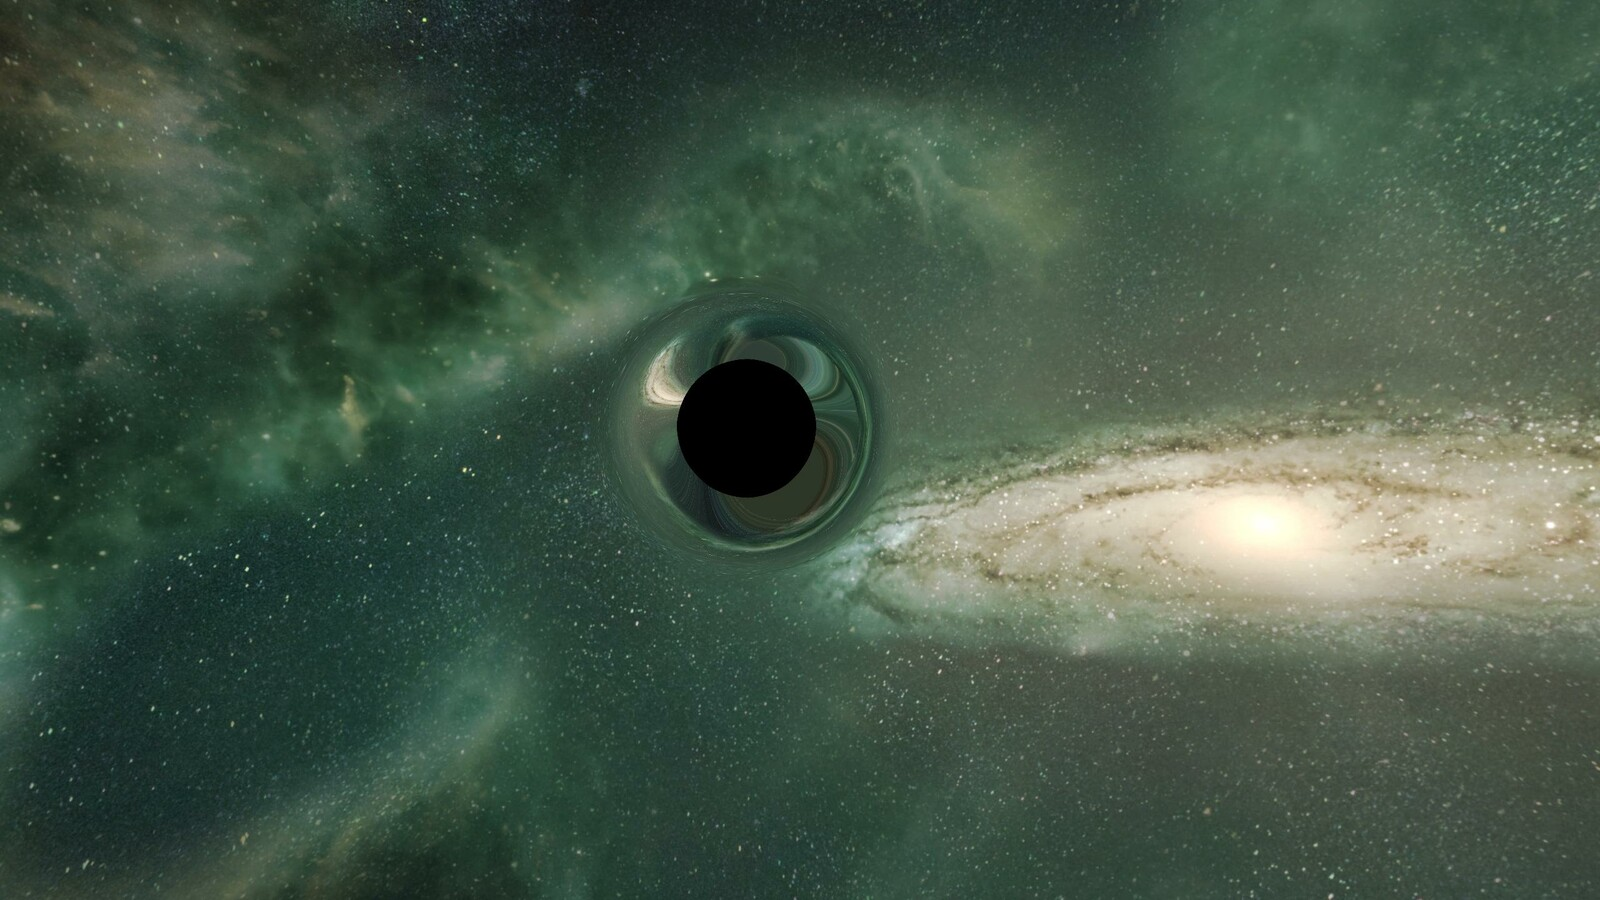 Black Hole Material